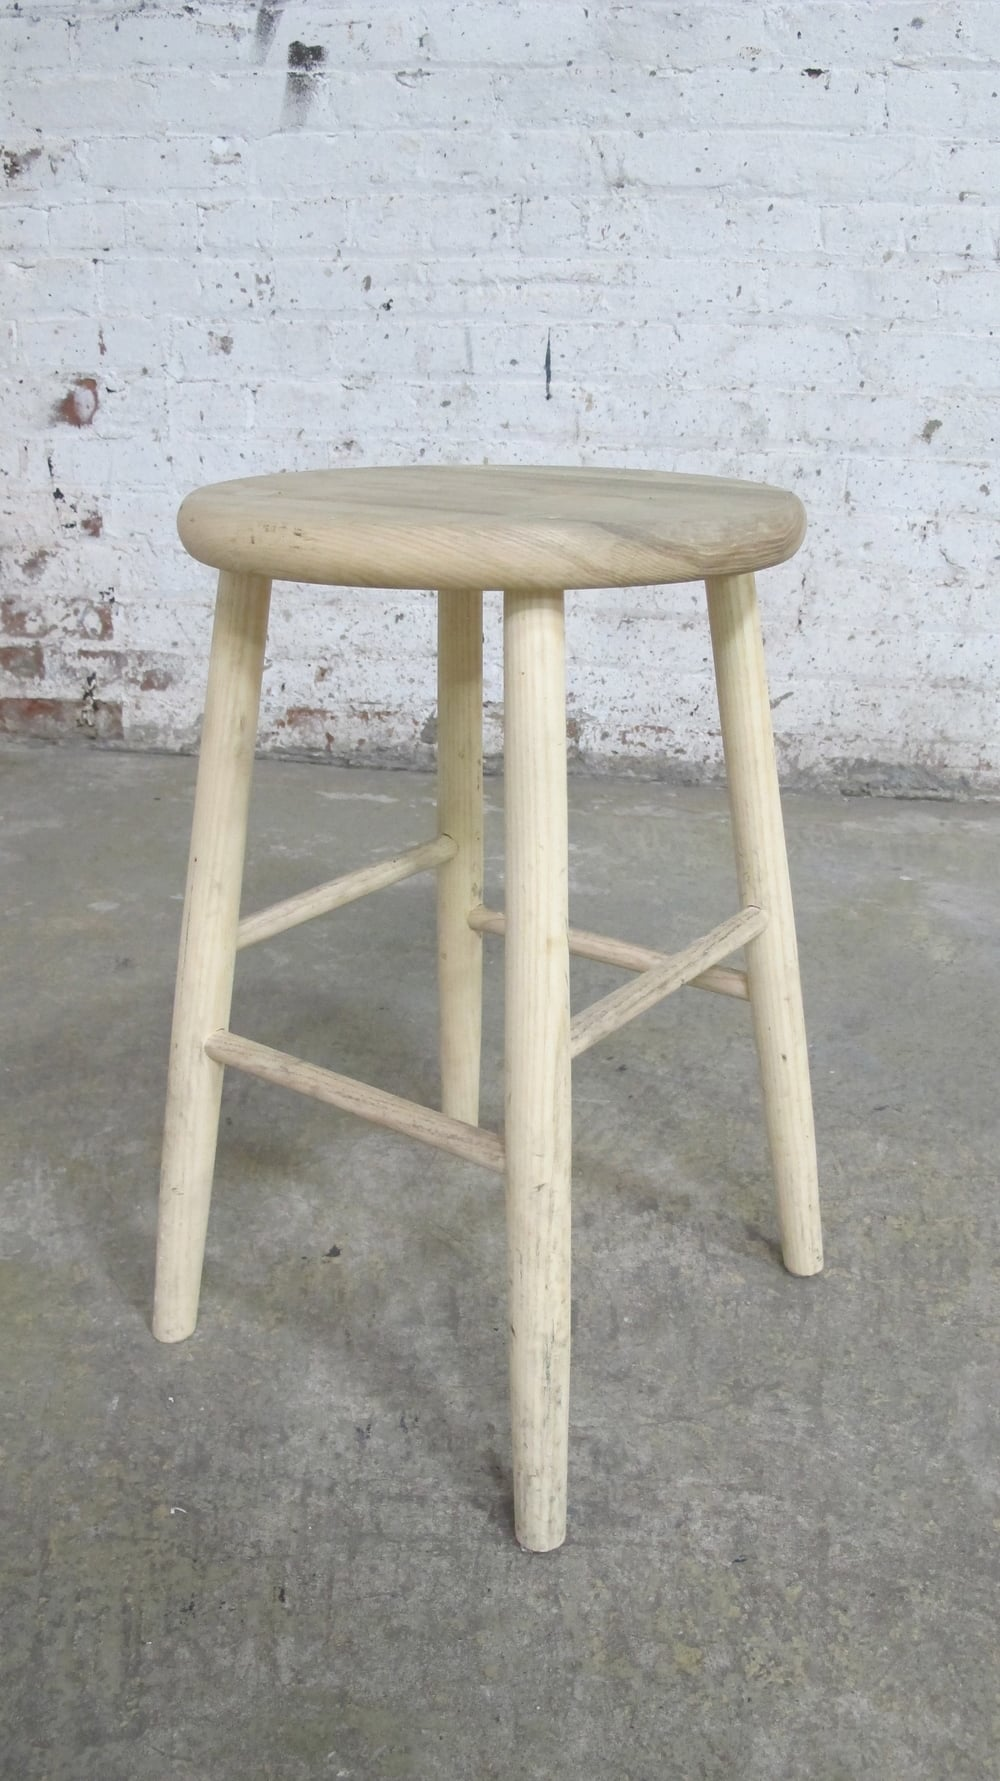 Raw Light Wood Stool copy $25